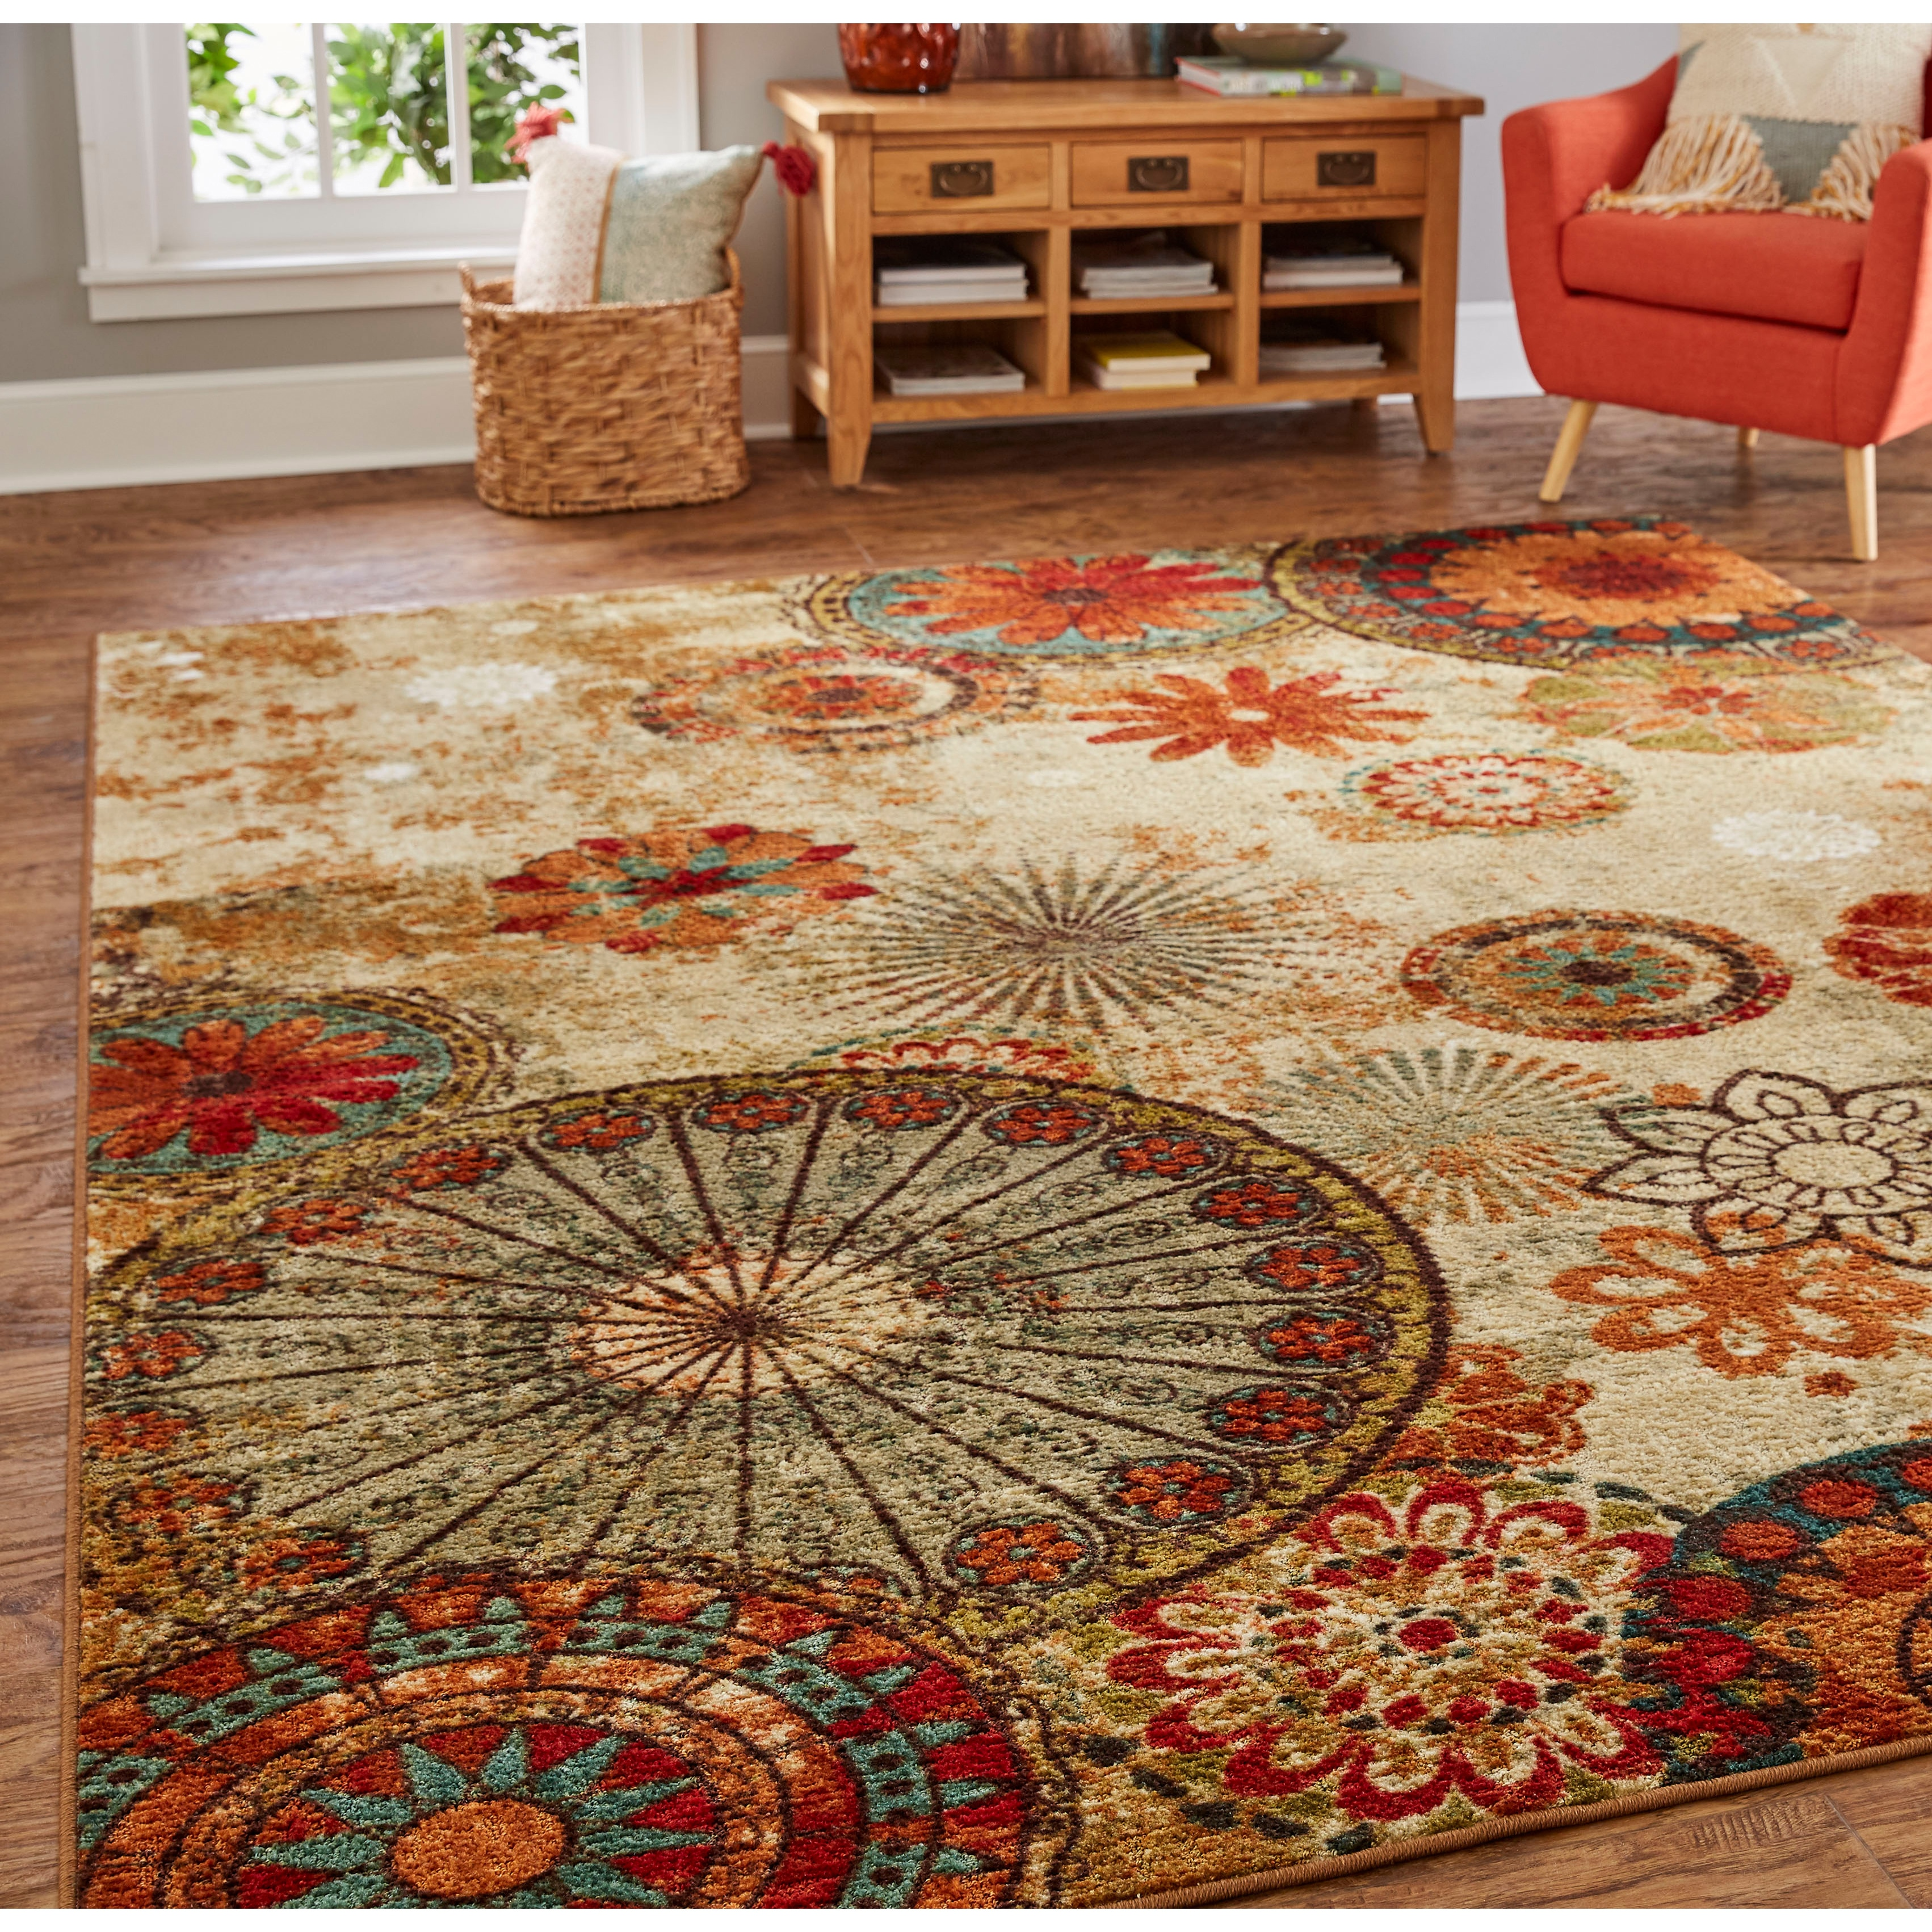 Gold Rugs u0026 Area Rugs For Less